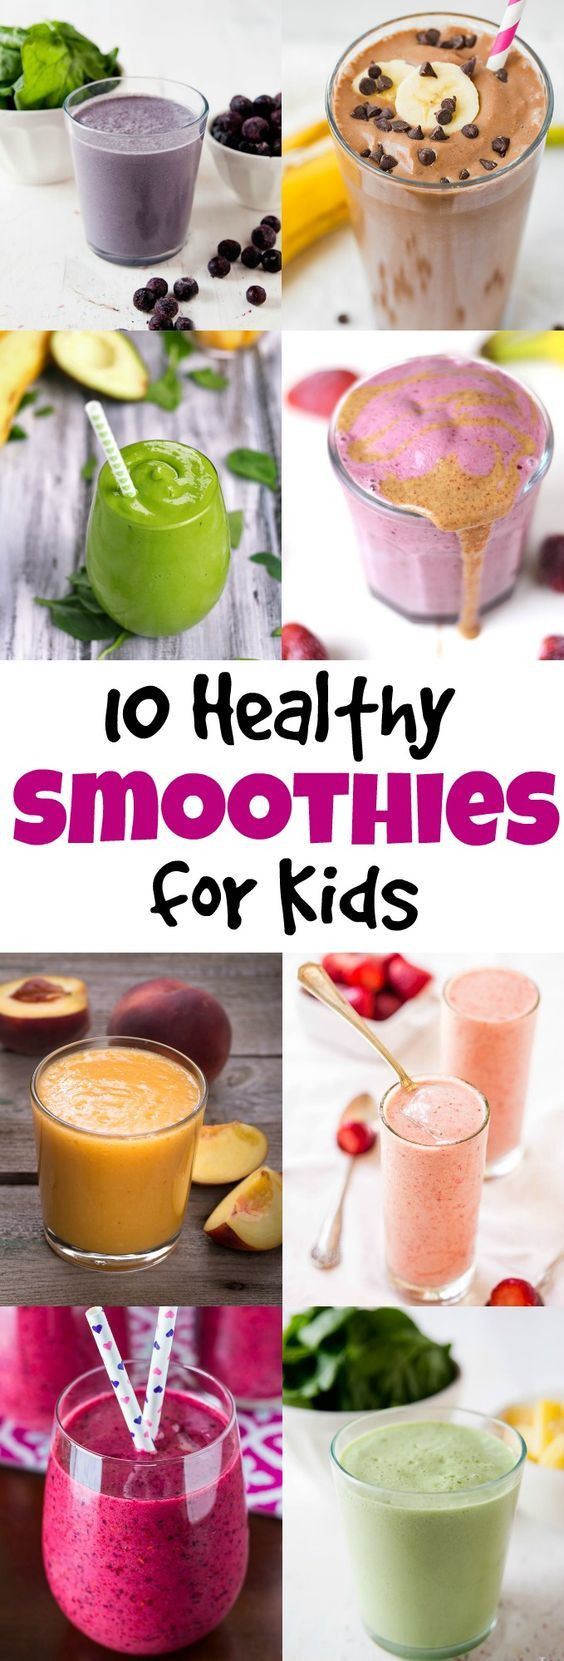 Healthy Kid Friendly Smoothies  10 Healthy Smoothies for Kids